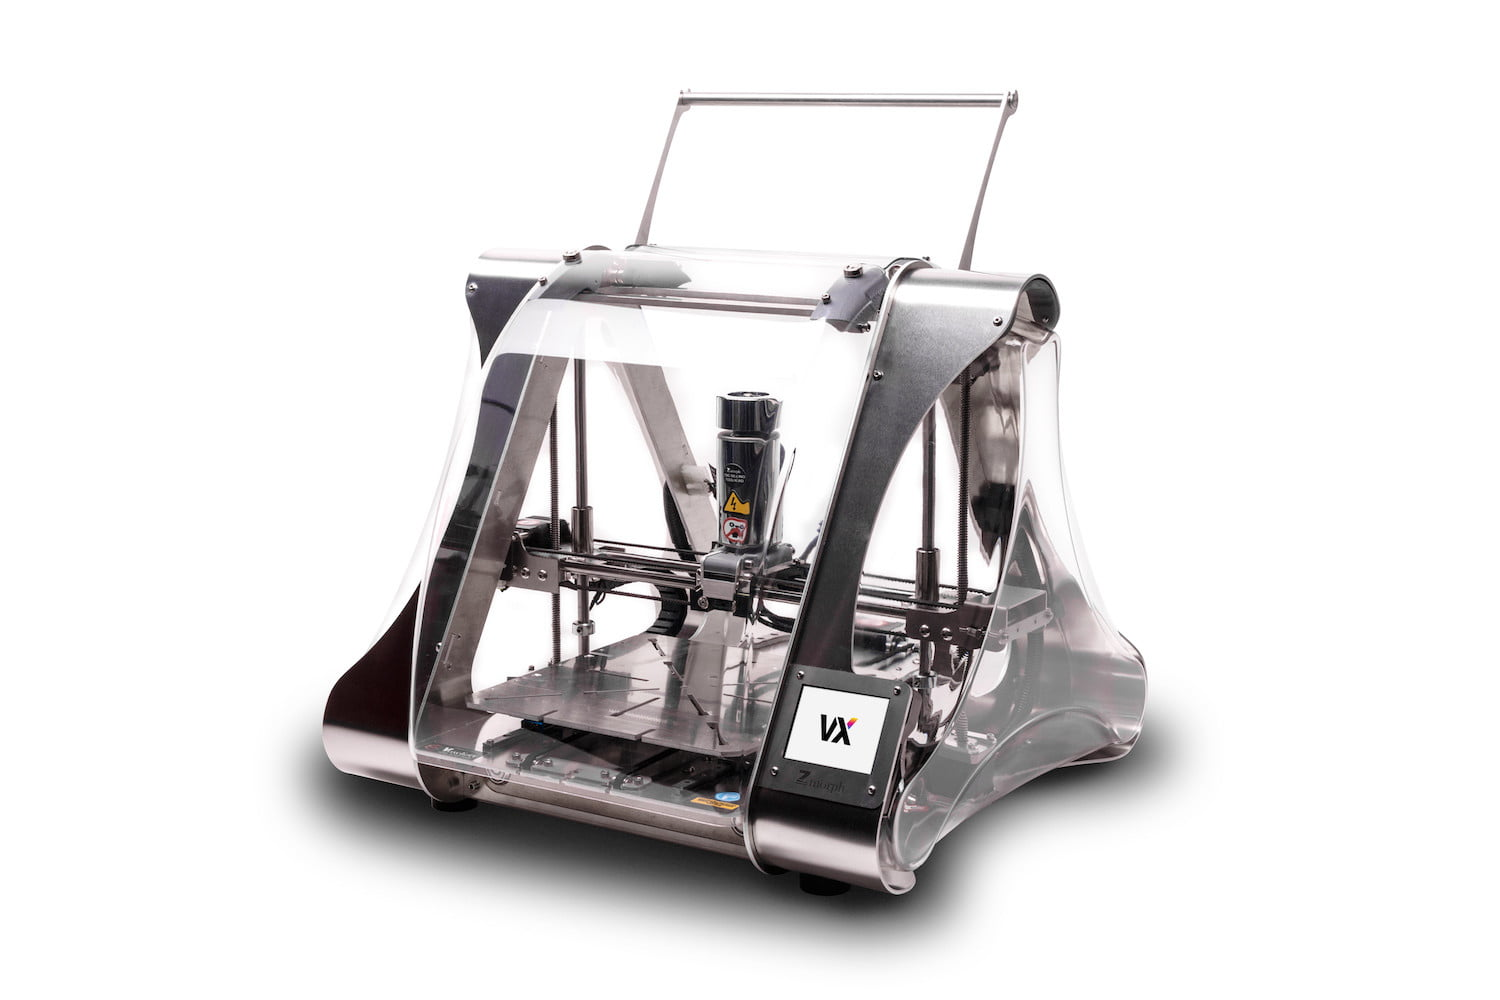 Best Way To Calibrate D Printer Bed